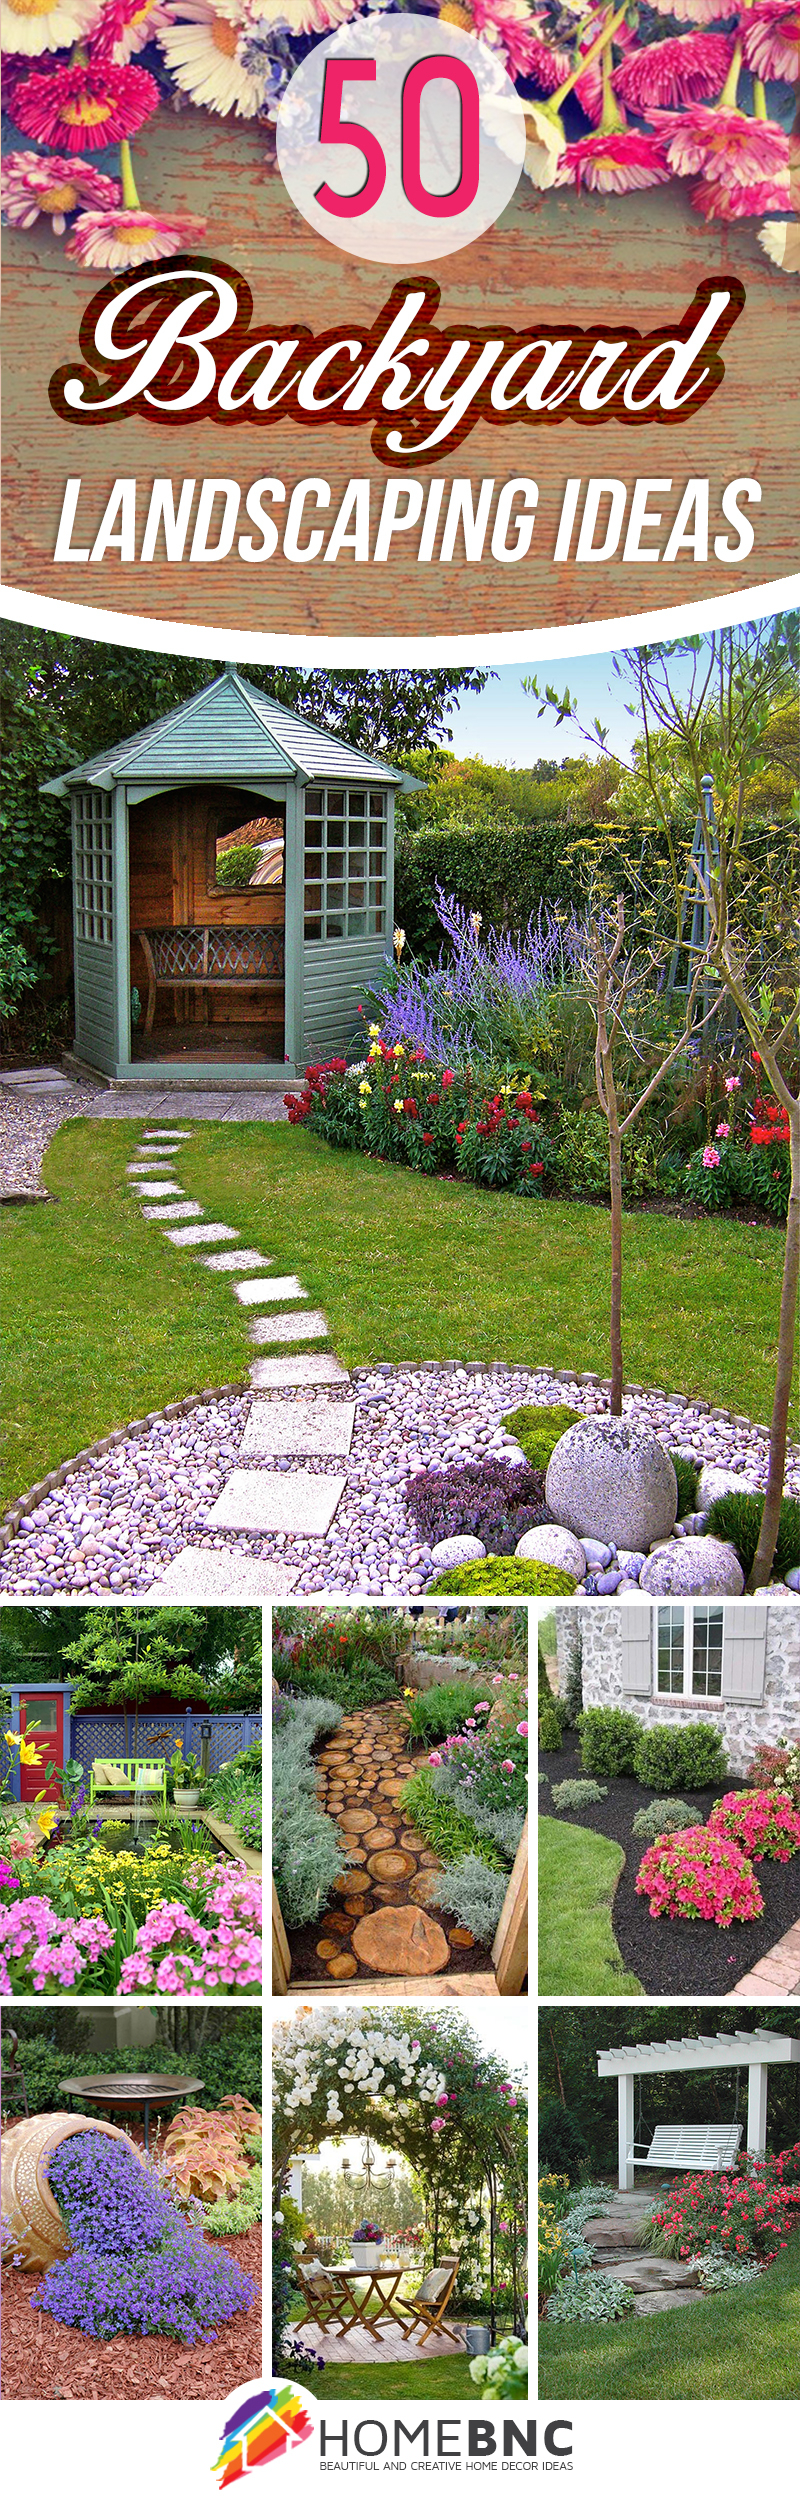 50 Best Backyard Landscaping Ideas And Designs In 2019 pertaining to Backyard Landscape Design Ideas